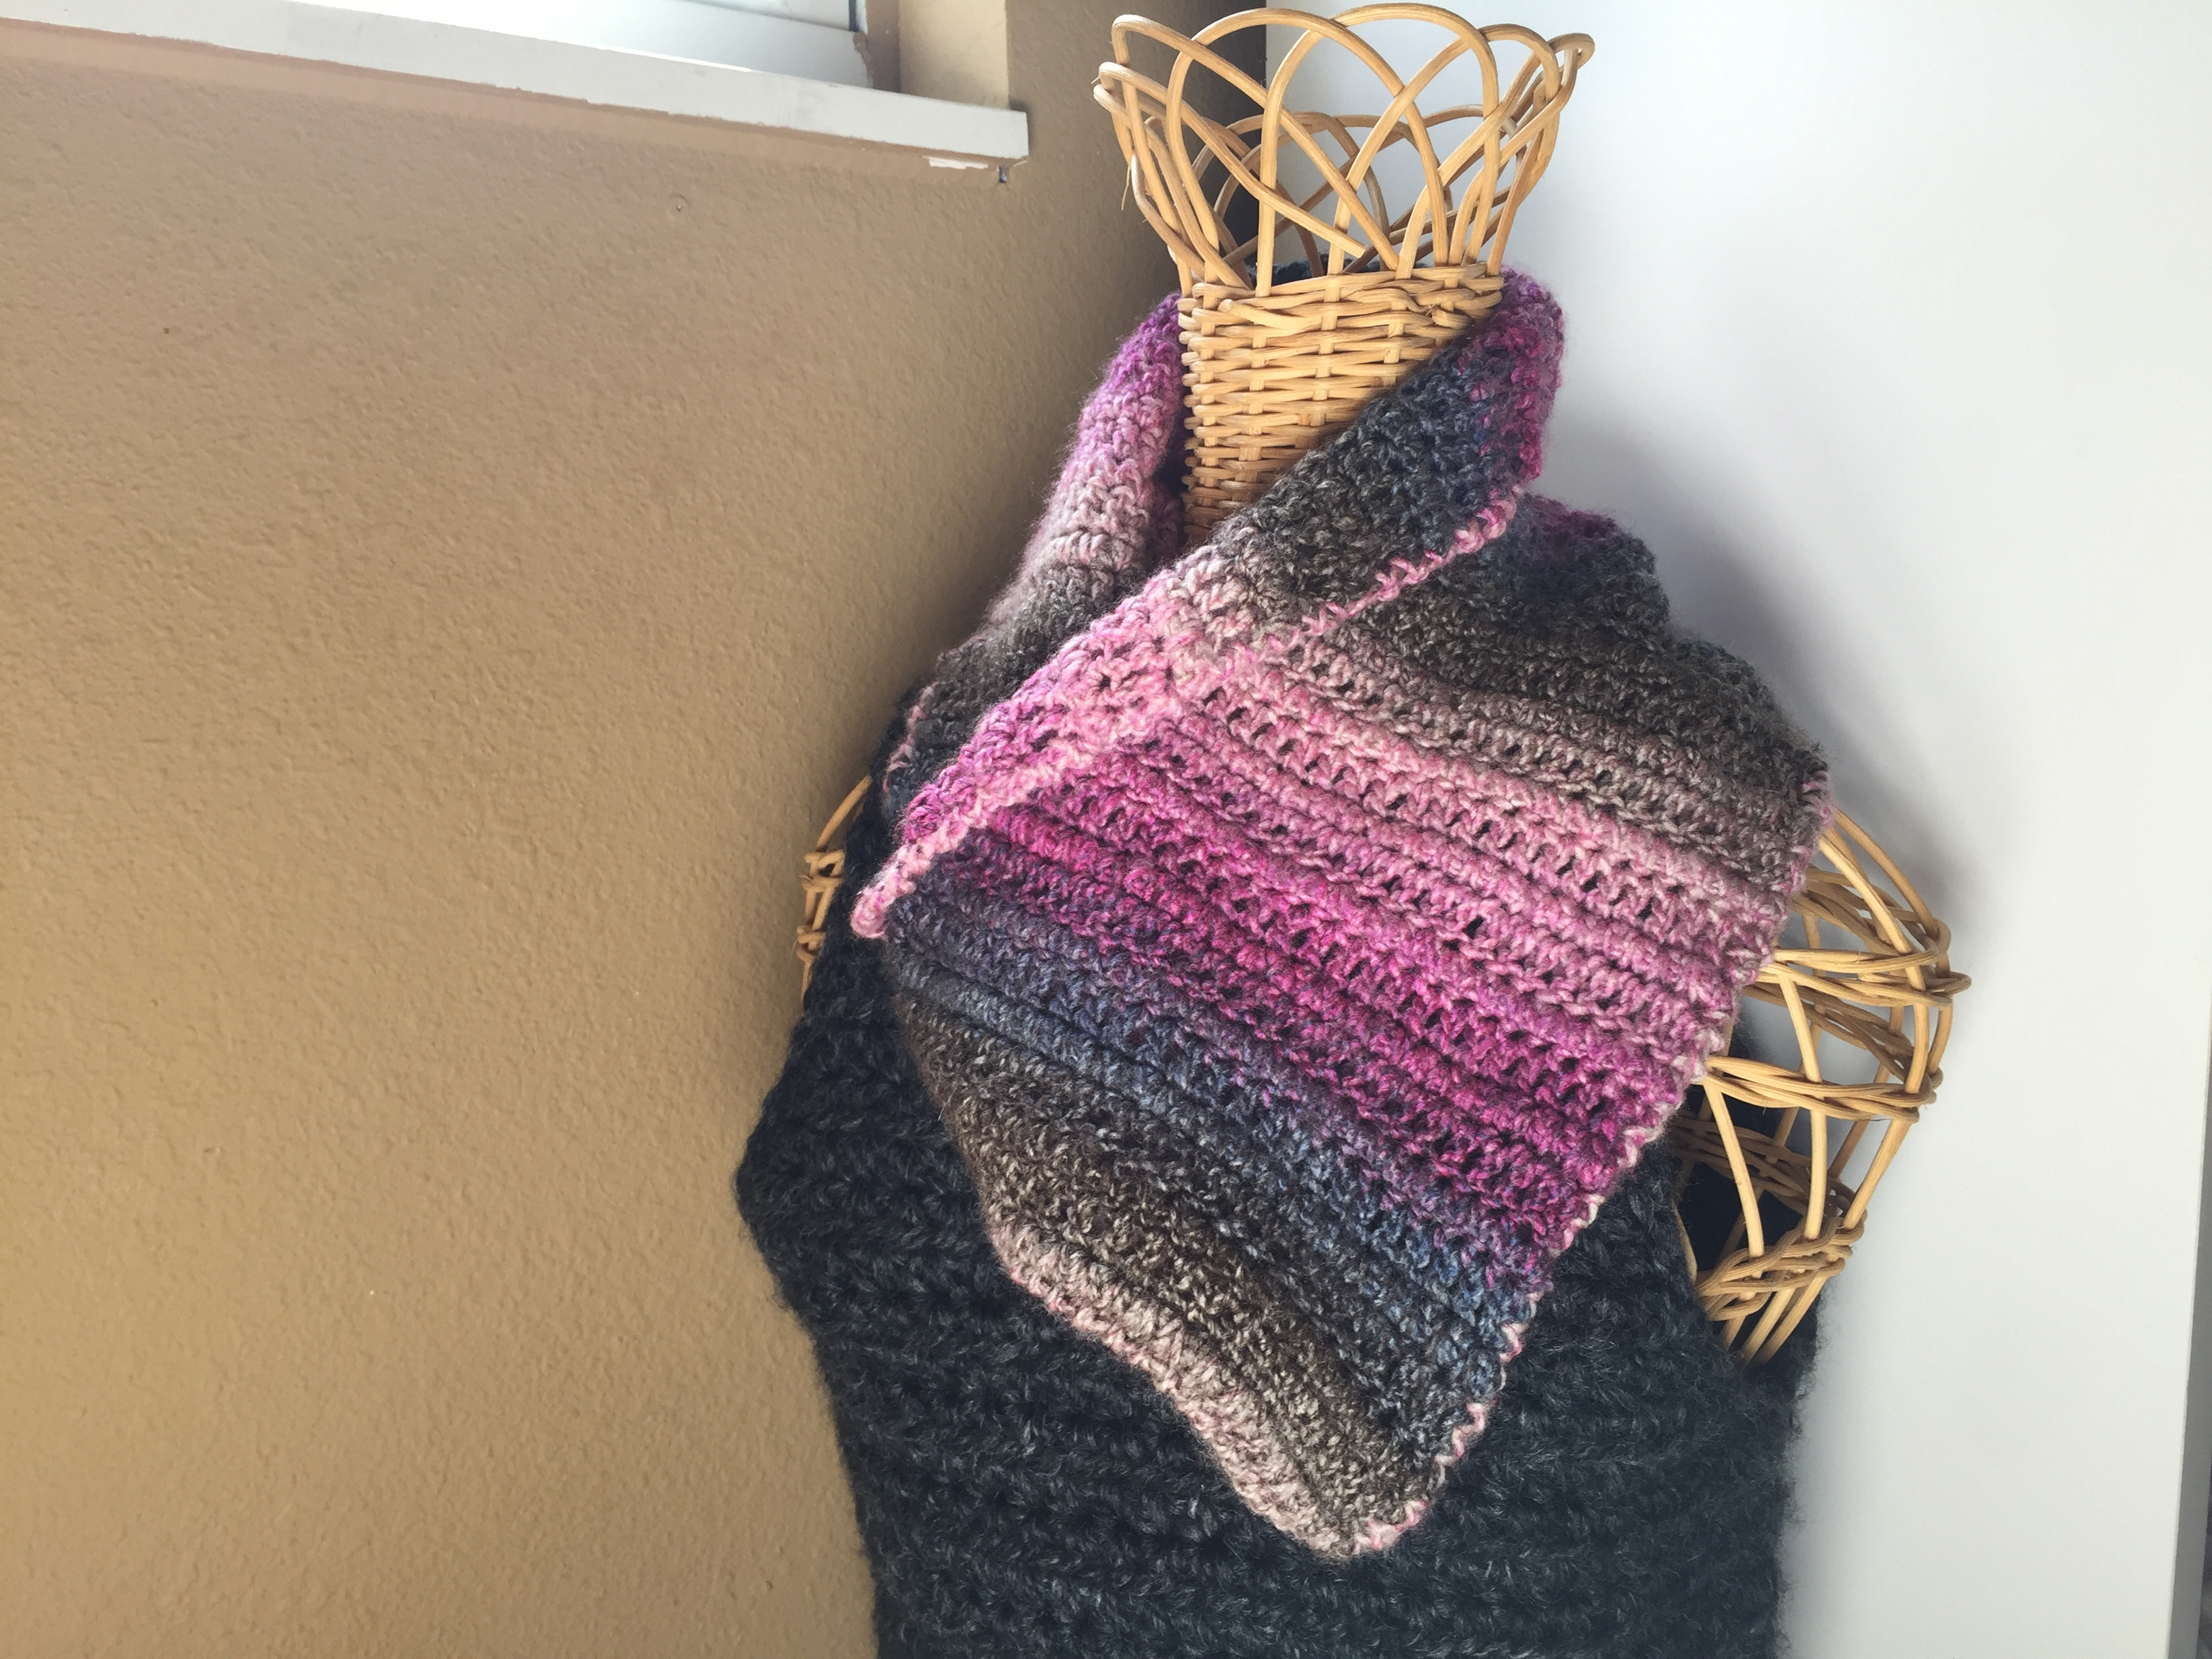 photograph regarding Free Printable Crochet Patterns known as No cost Crochet Practice: Plum Ideal Cowl Ems Fiber Arts